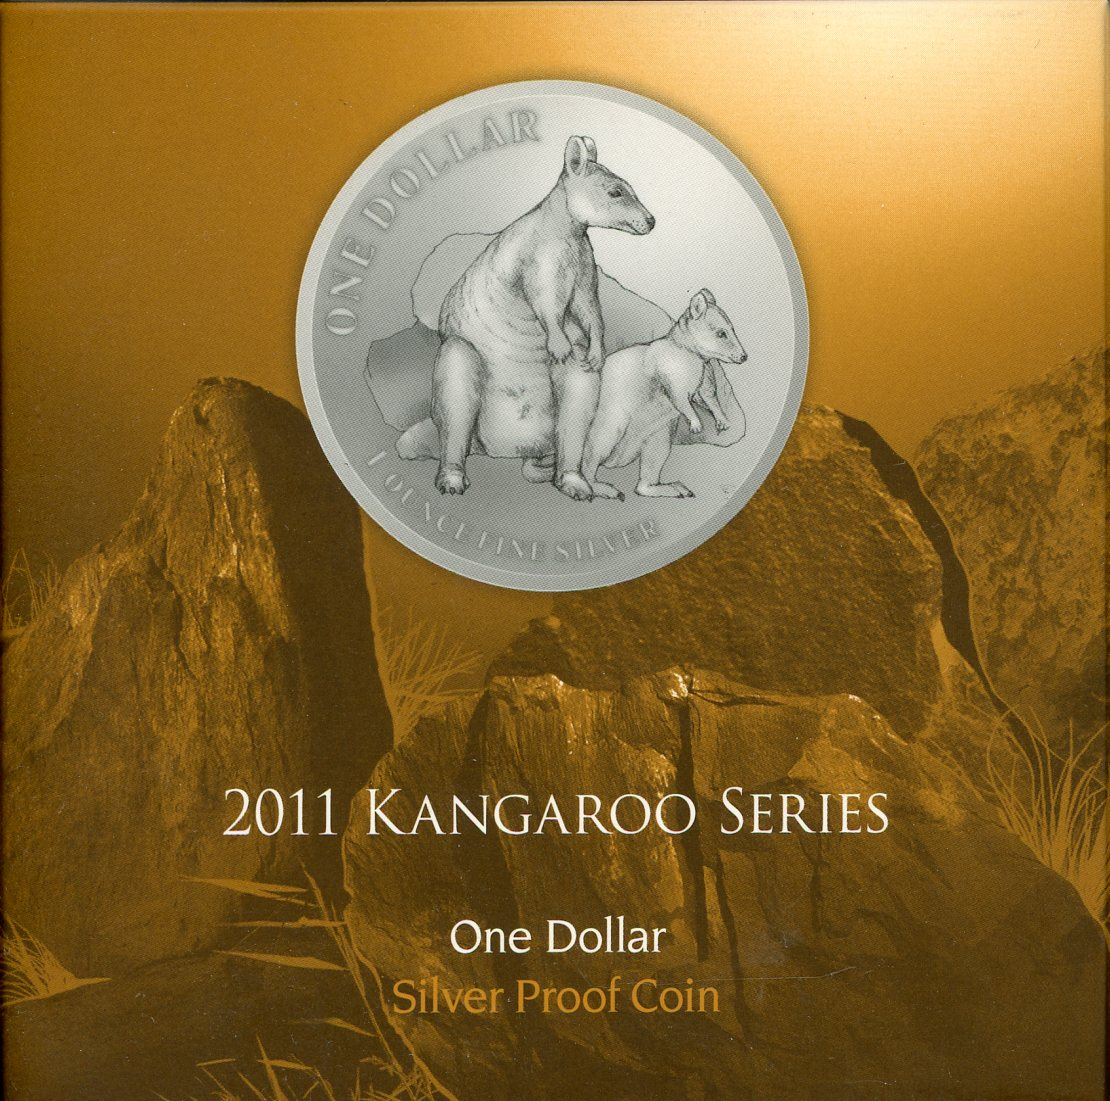 Thumbnail for 2011 $1 Silver Proof Coin Kangaroo Series - Allied Rock Wallaby